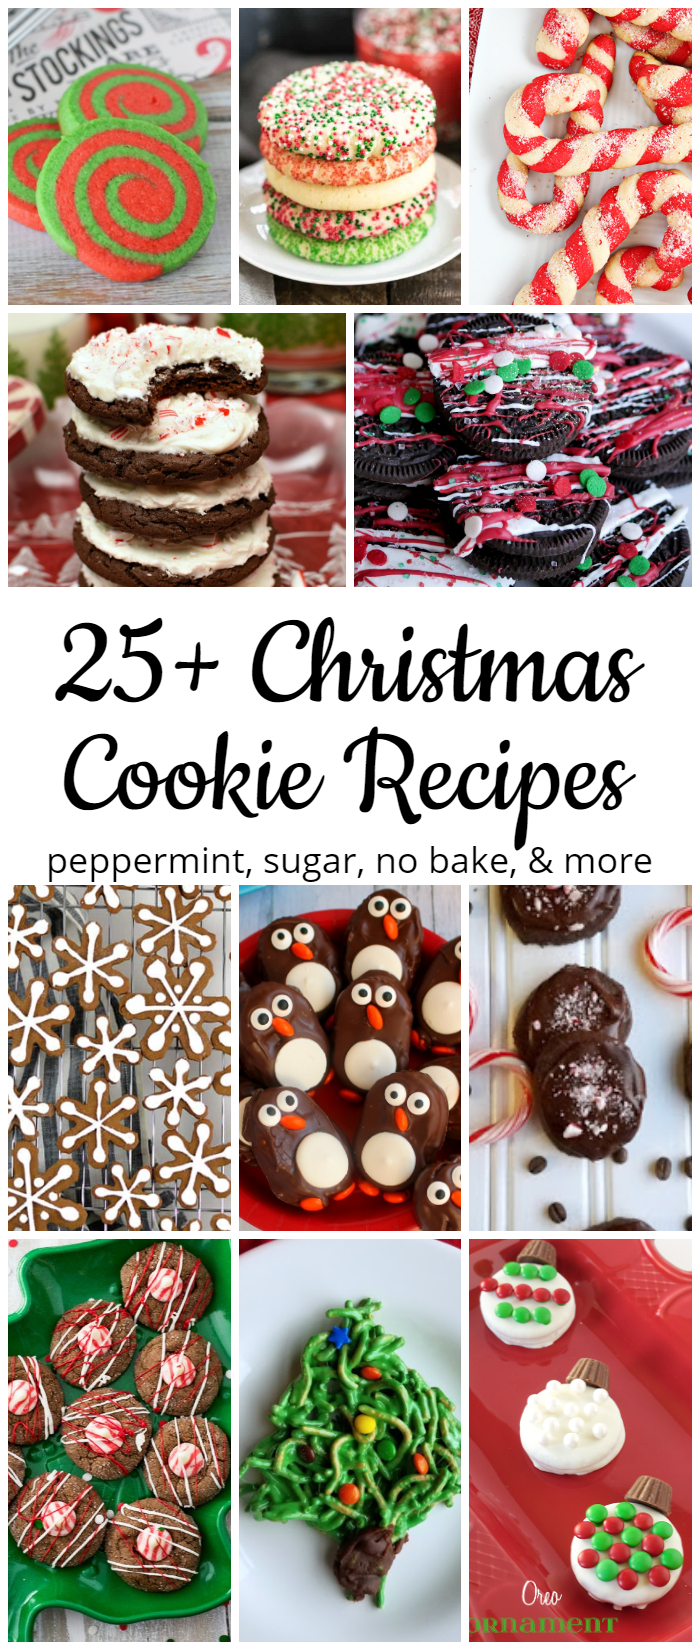 25+ Christmas Cookie Recipes - gingerbread, sugar cookies, peppermint, cocoa, no bake, and more! #Christmascookies #cookies